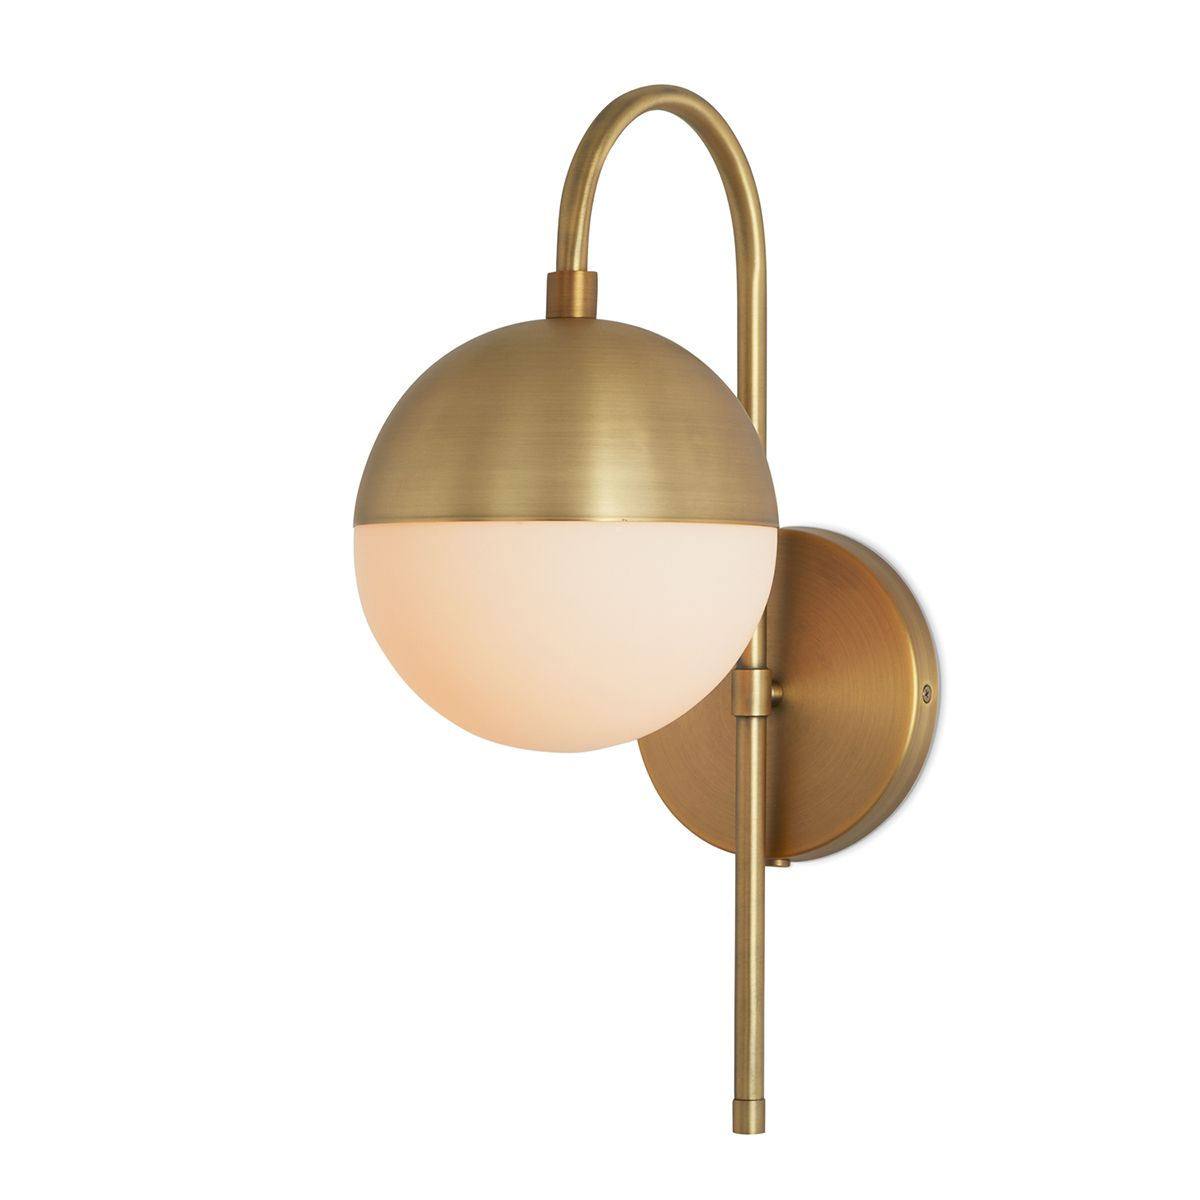 The Best Plug-in Sconces (No Electrician Needed!) | Lights ...